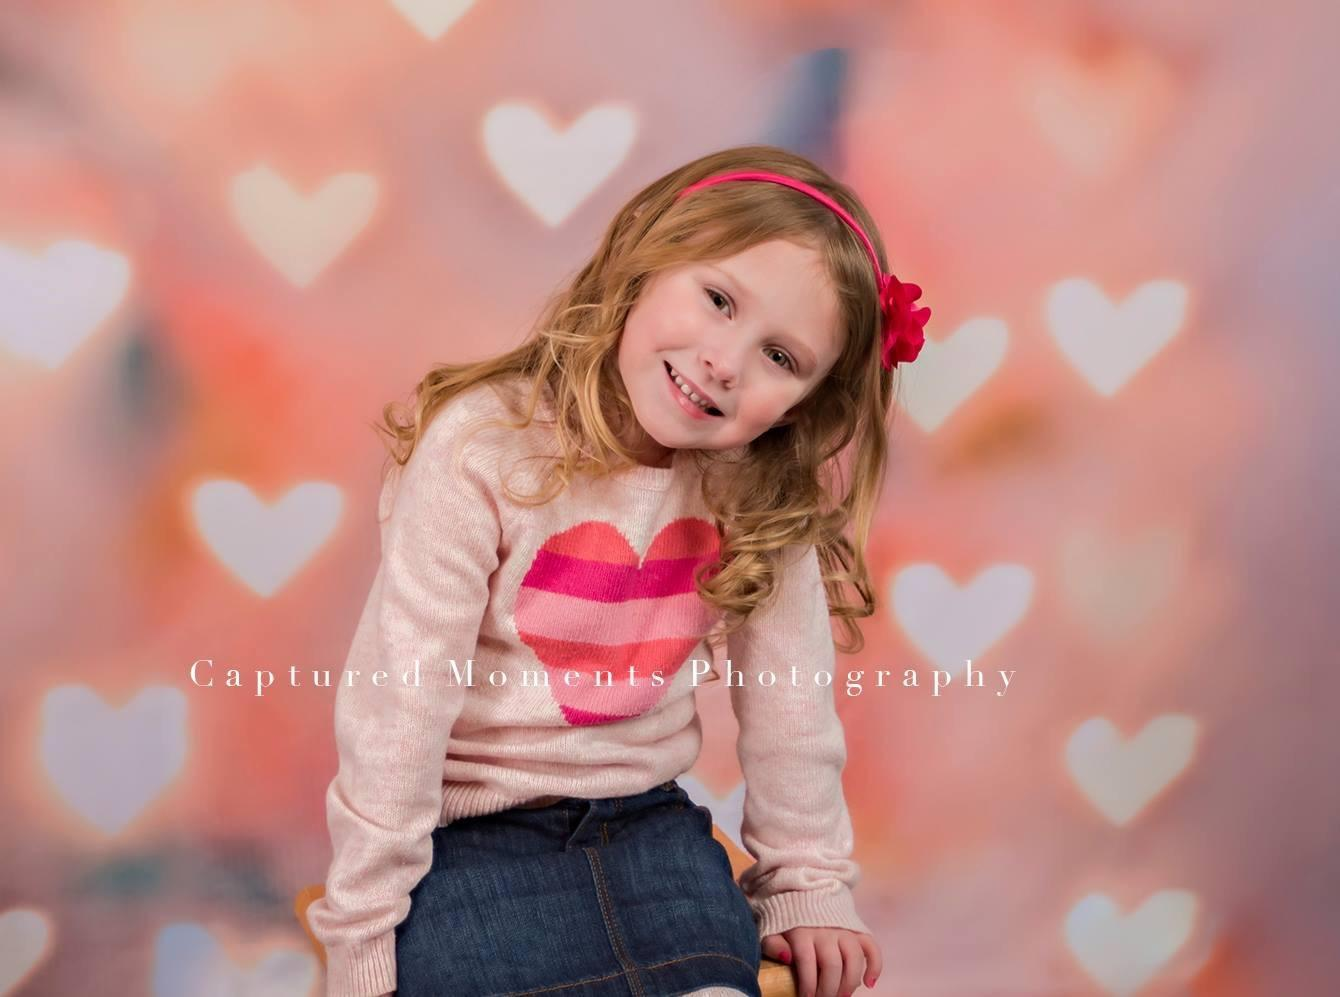 Load image into Gallery viewer, Katebackdrop:Kate Light Pink Love Heart Glitter Valentine's Day Backdrops for Photography